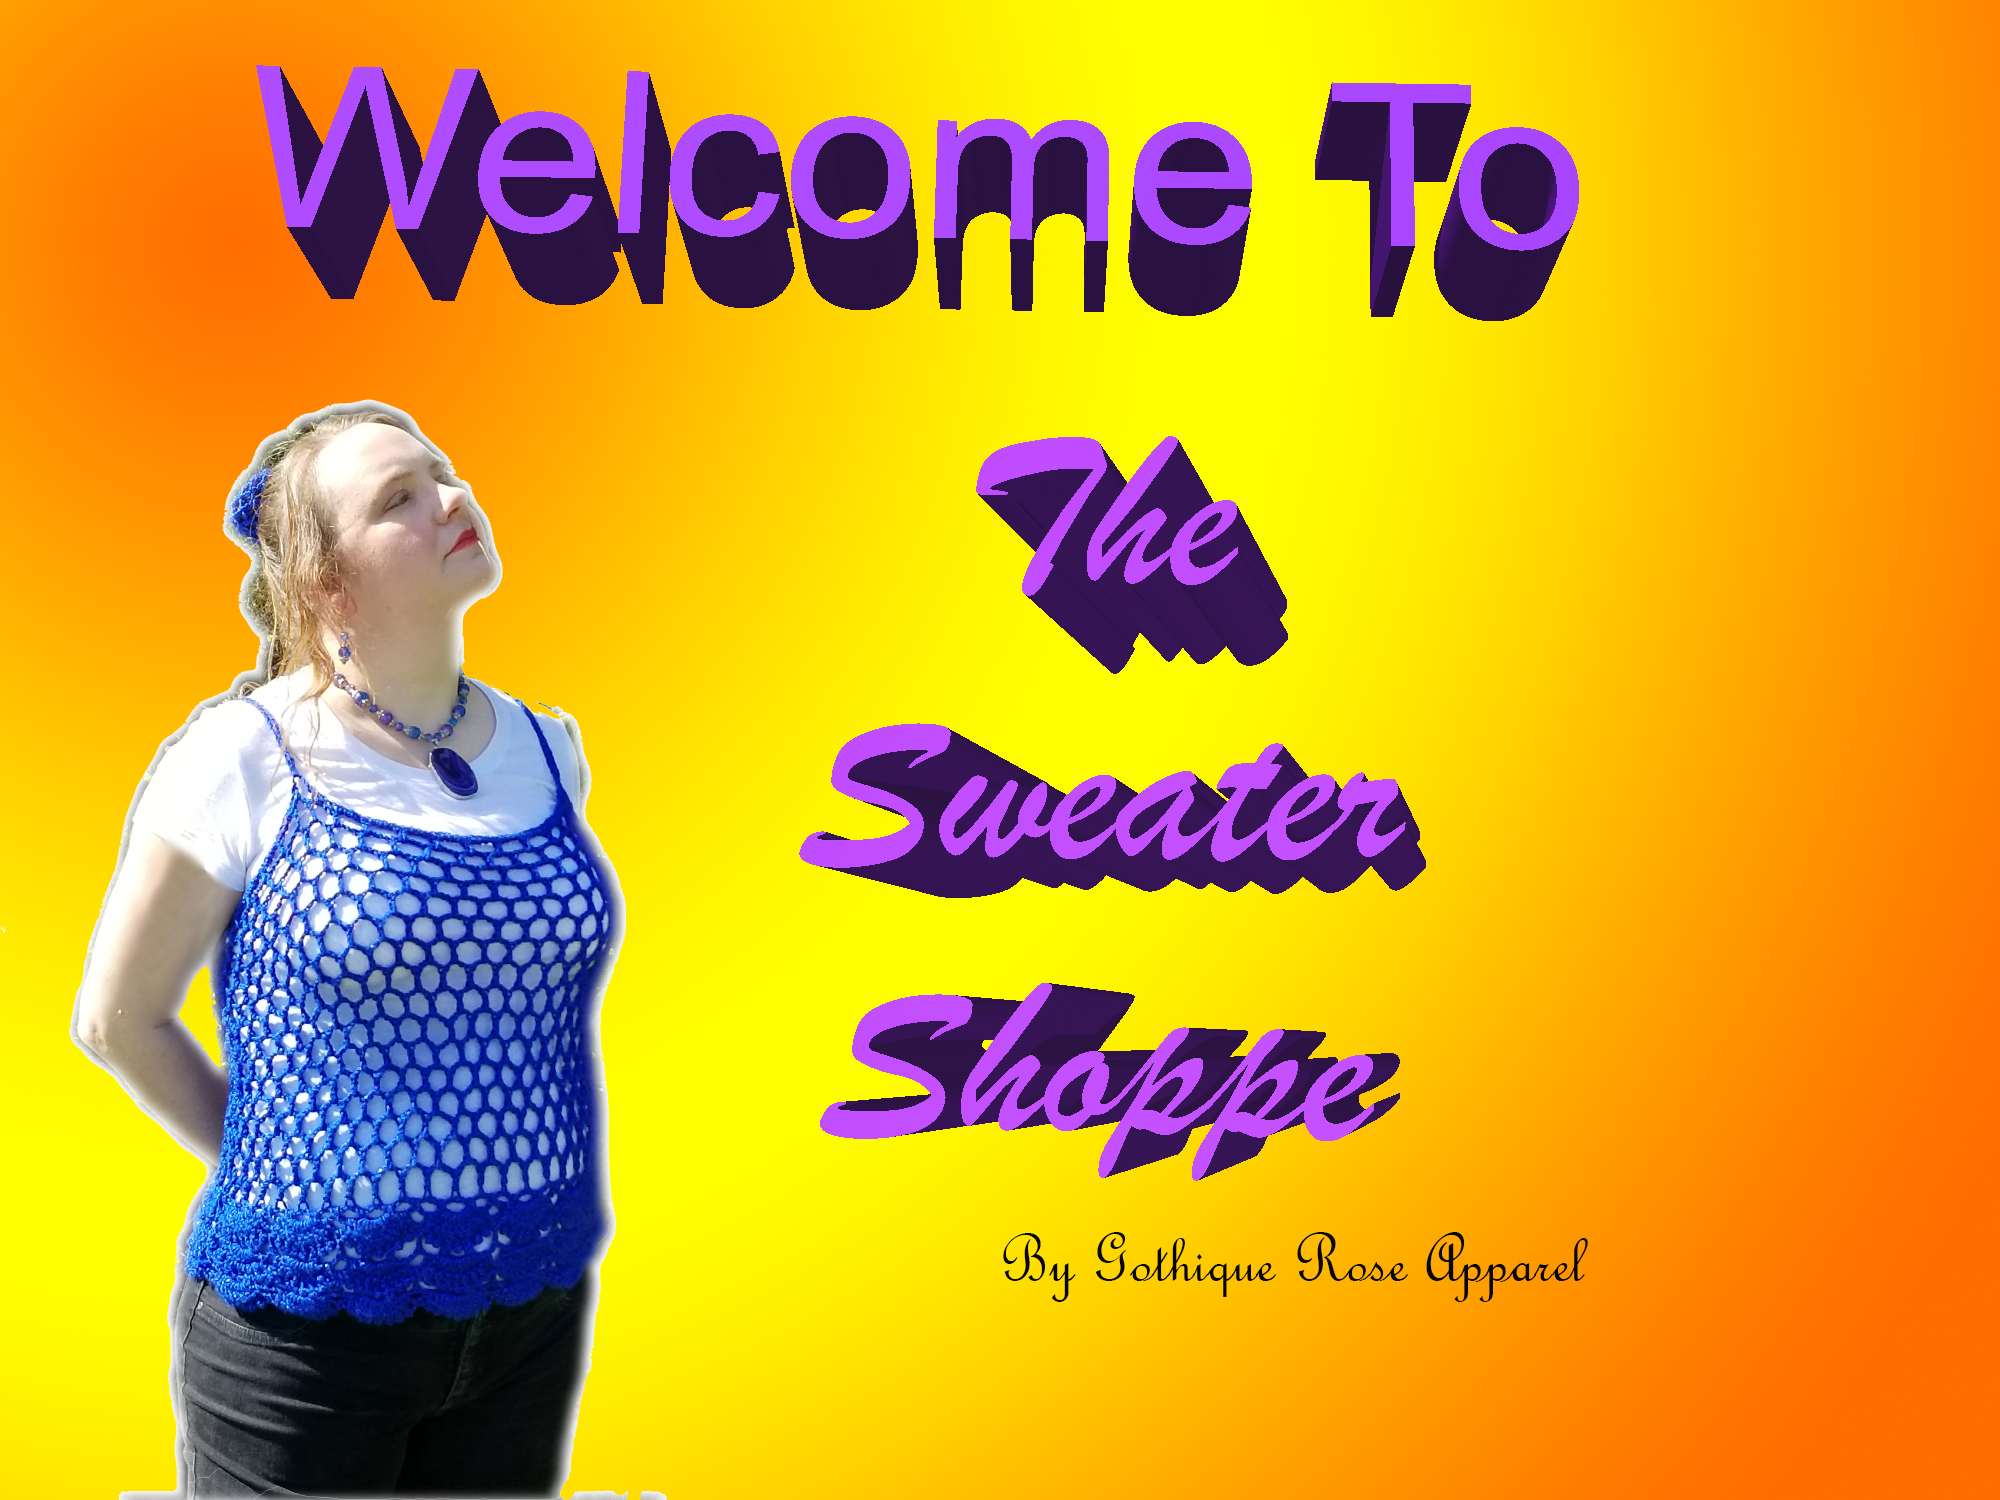 Welcome to The Sweater Shoppe by Gothique Rose Apparel